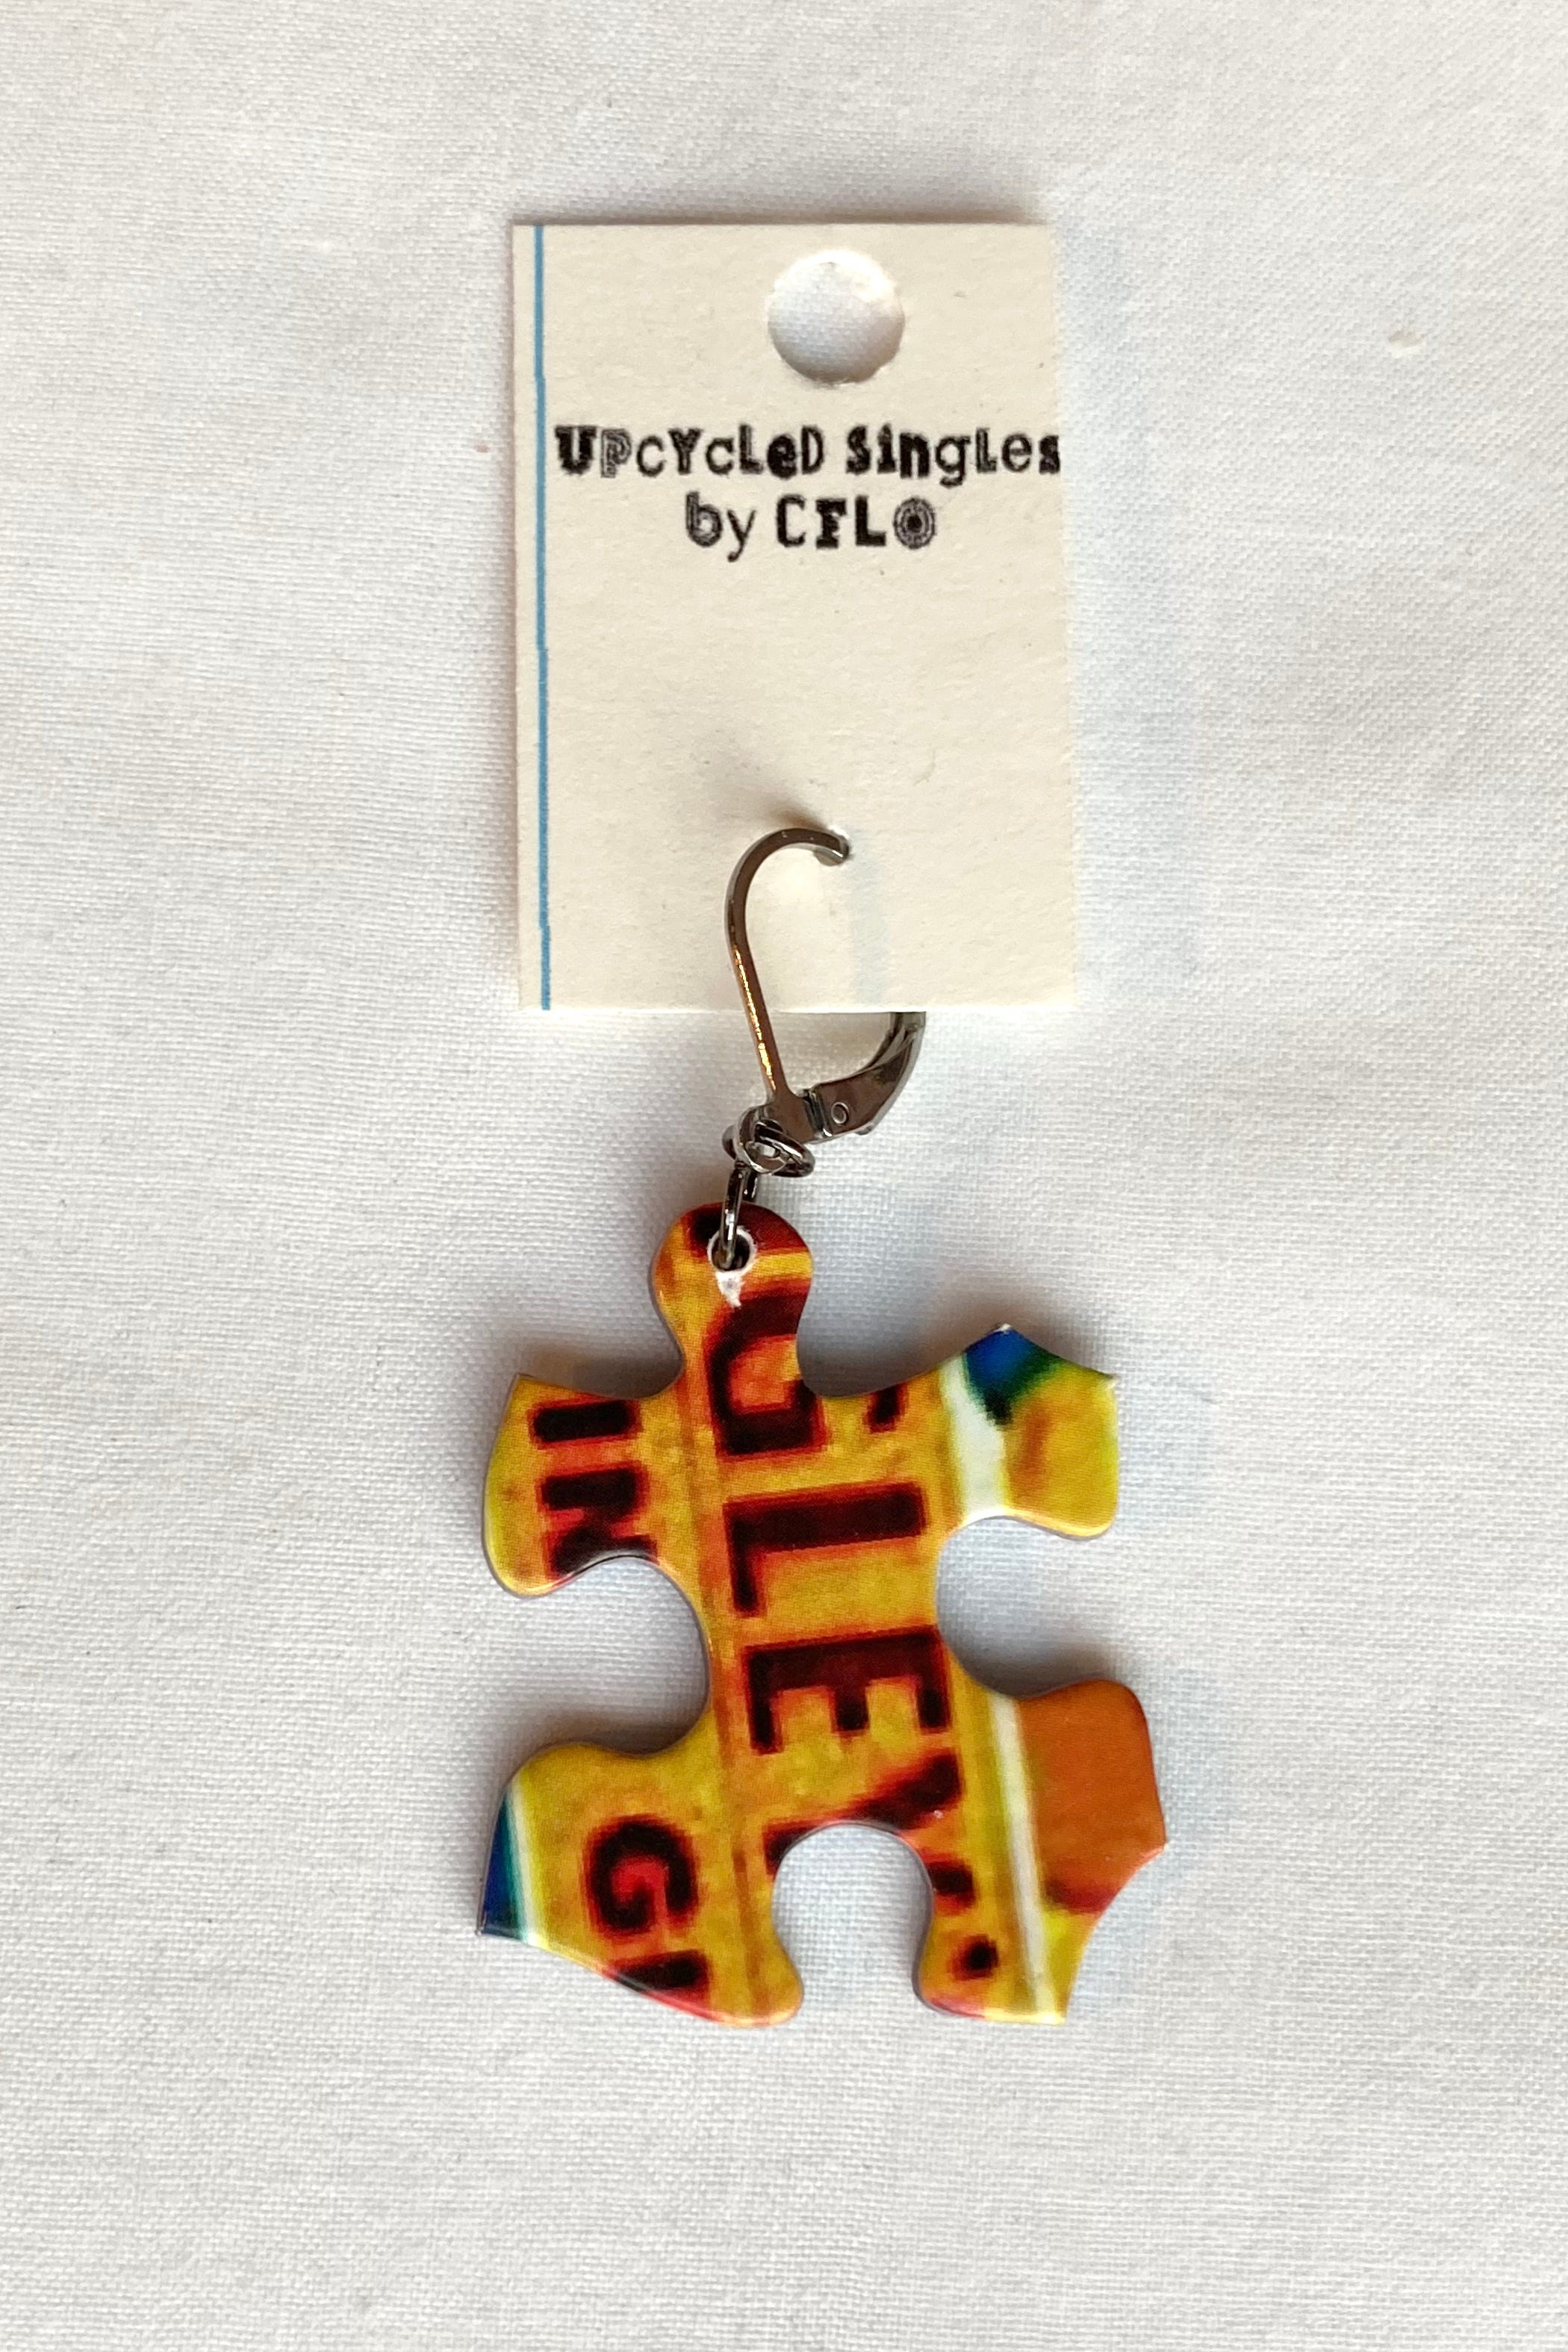 Upcycled Singles! Puzzle Piece! Vintage Charms For Your Ears!